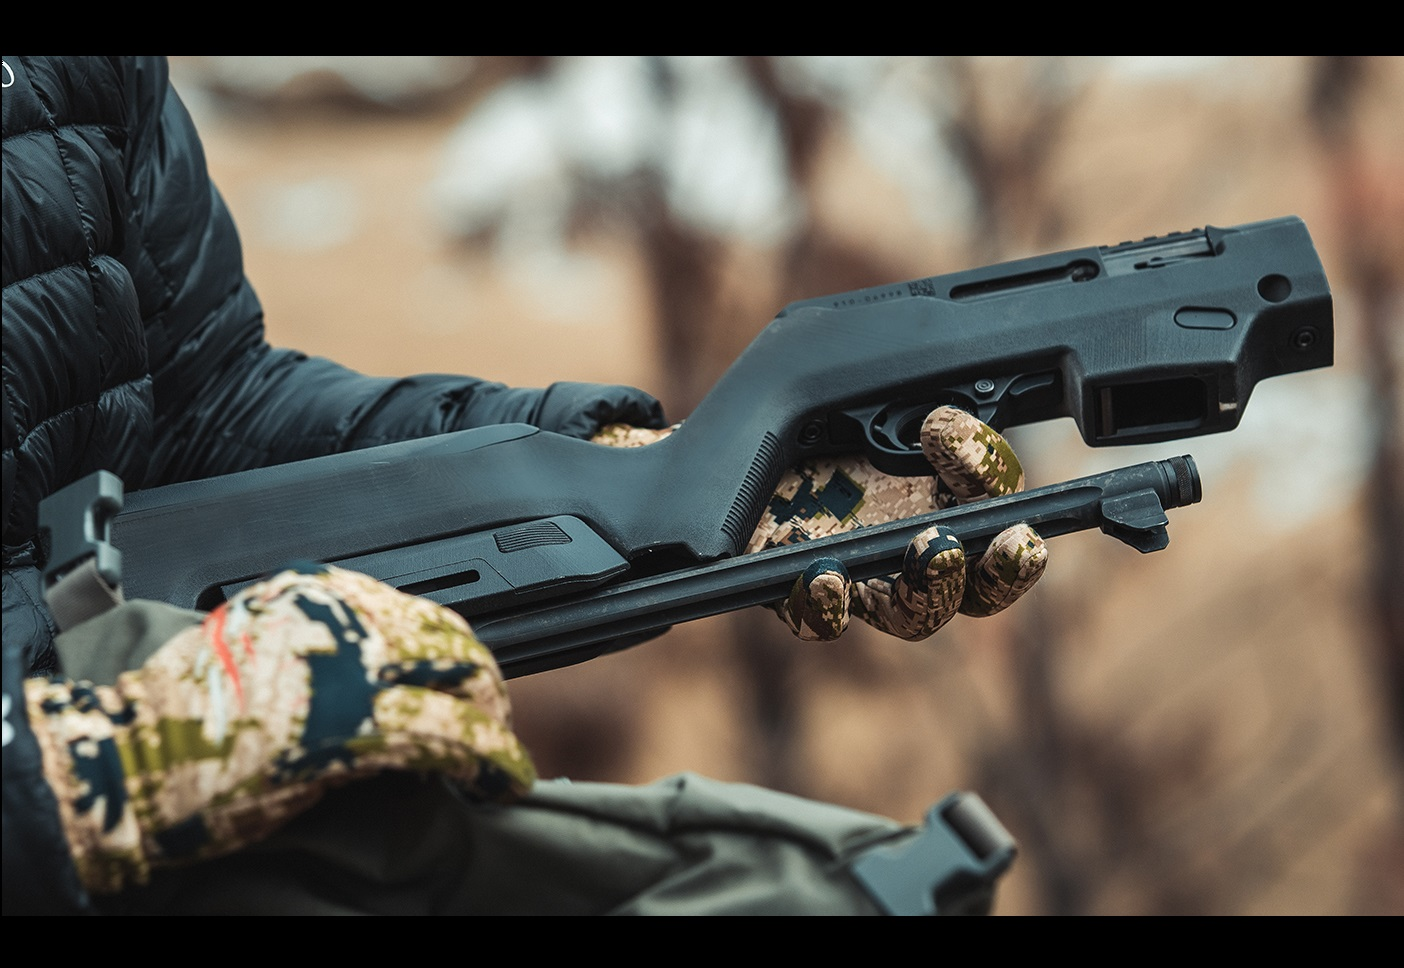 MAGPUL INDUSTRIES SHOWS SUPPORT FOR THE RUGER PC CARBINE WITH THE PC BACKPACKER STOCK